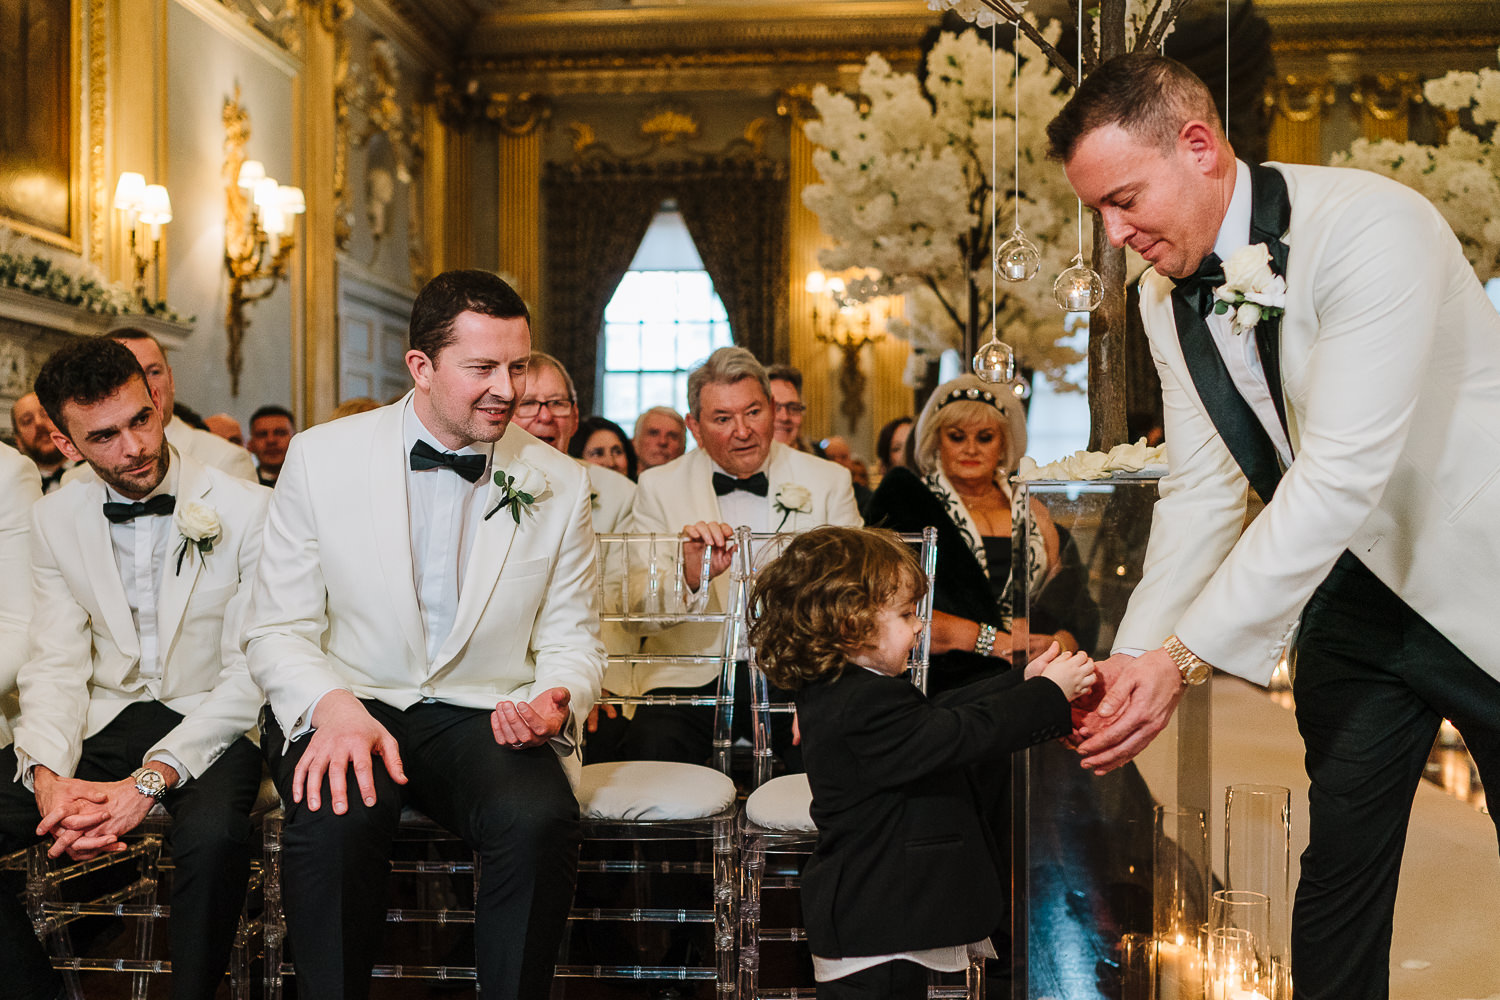 Groom getting the rings from page boy